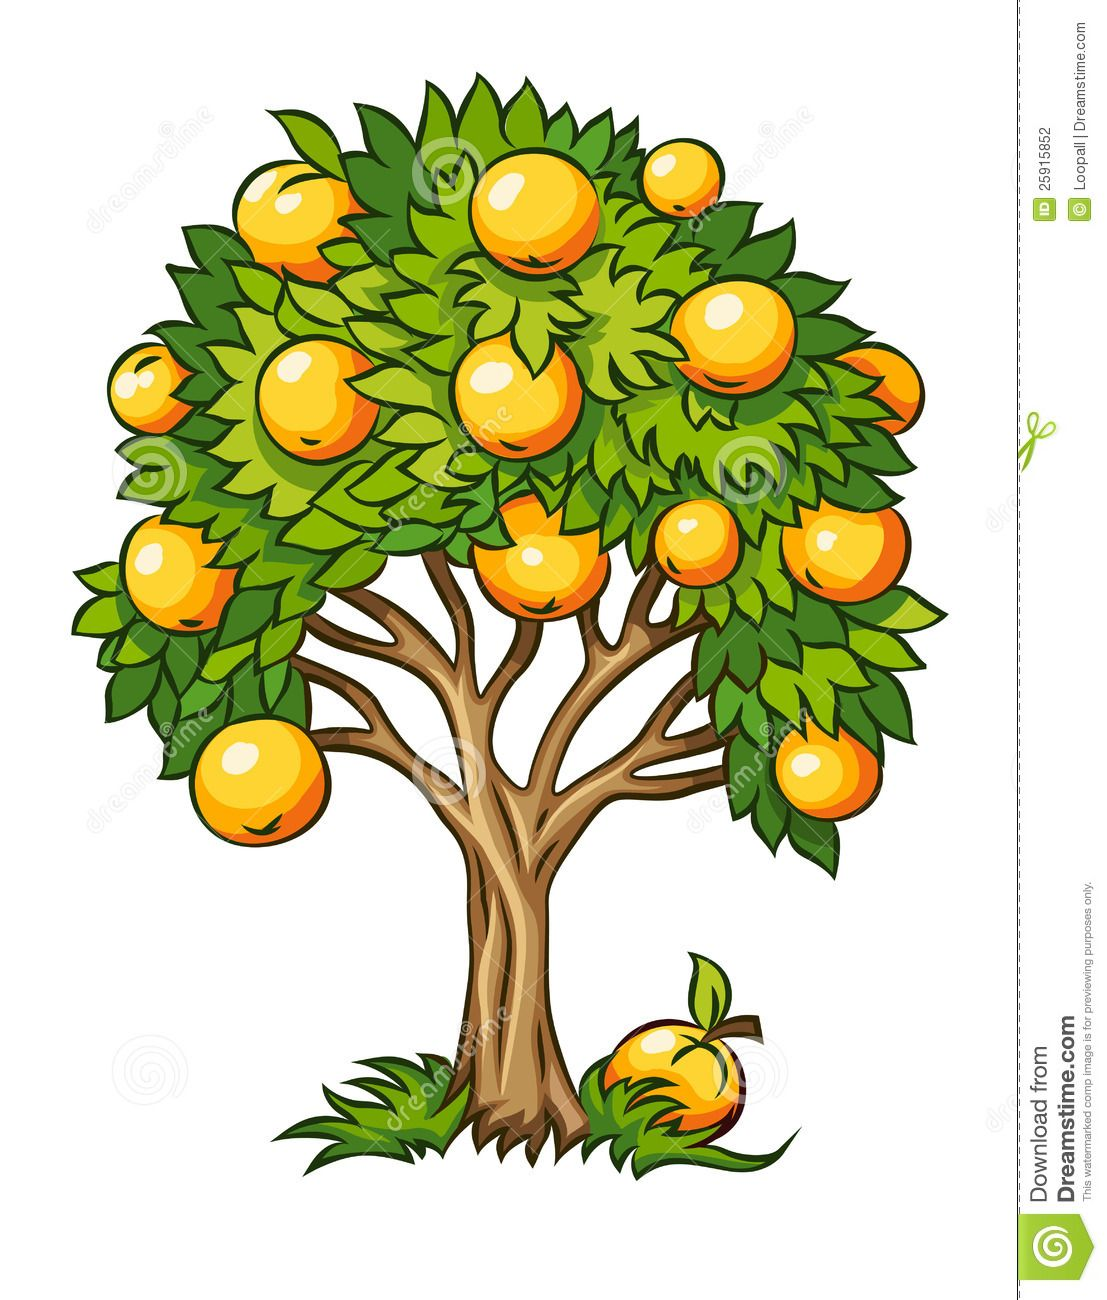 Fruit garden clipart png transparent Pin by NinjaMina Grandma on Printable - Free things to print out ... png transparent